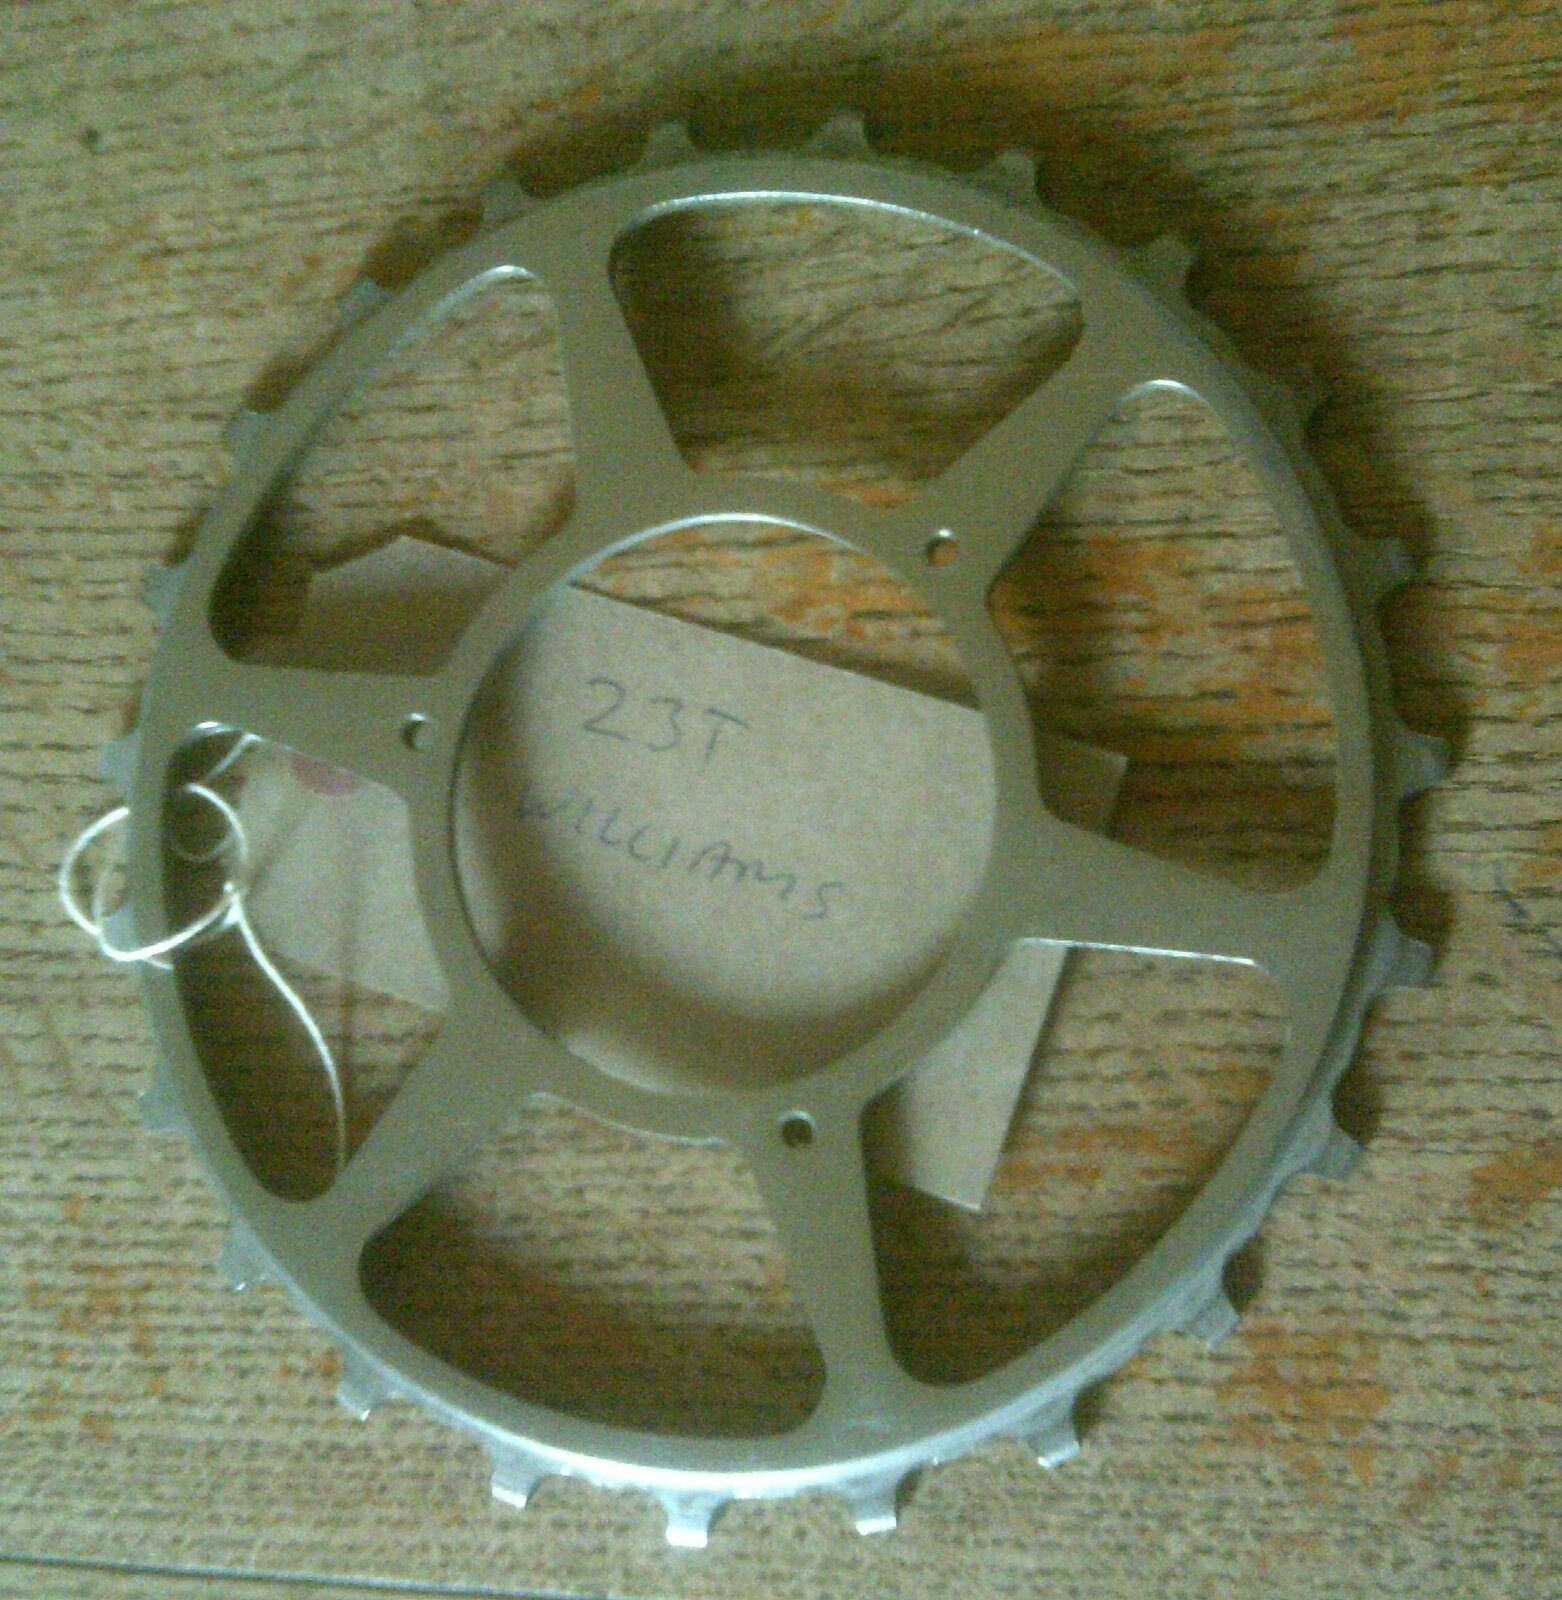 23 TOOTH WILLIAMS C34 CHROMED INCH PITCH CHAINRING, SKIP TOOTH